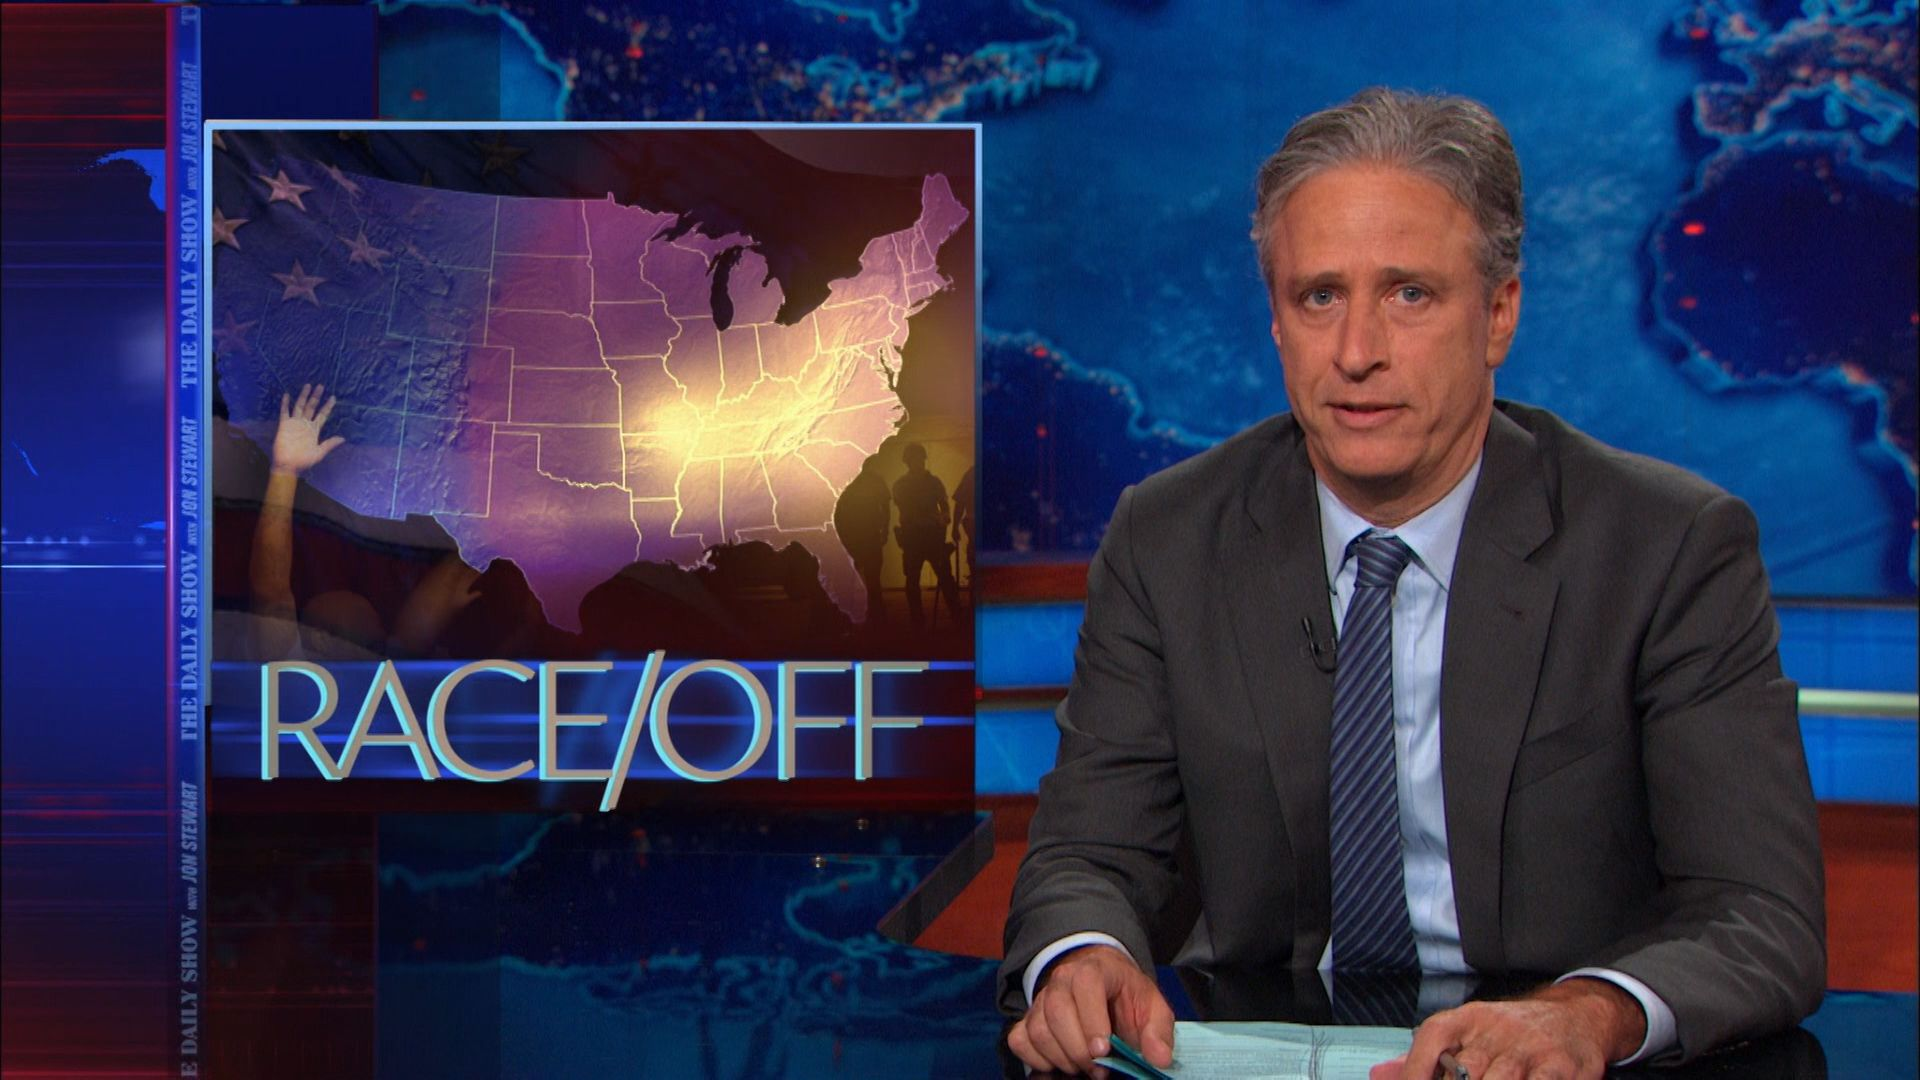 Race/Off - The Daily Show with Jon Stewart (Video Clip) | Comedy Central